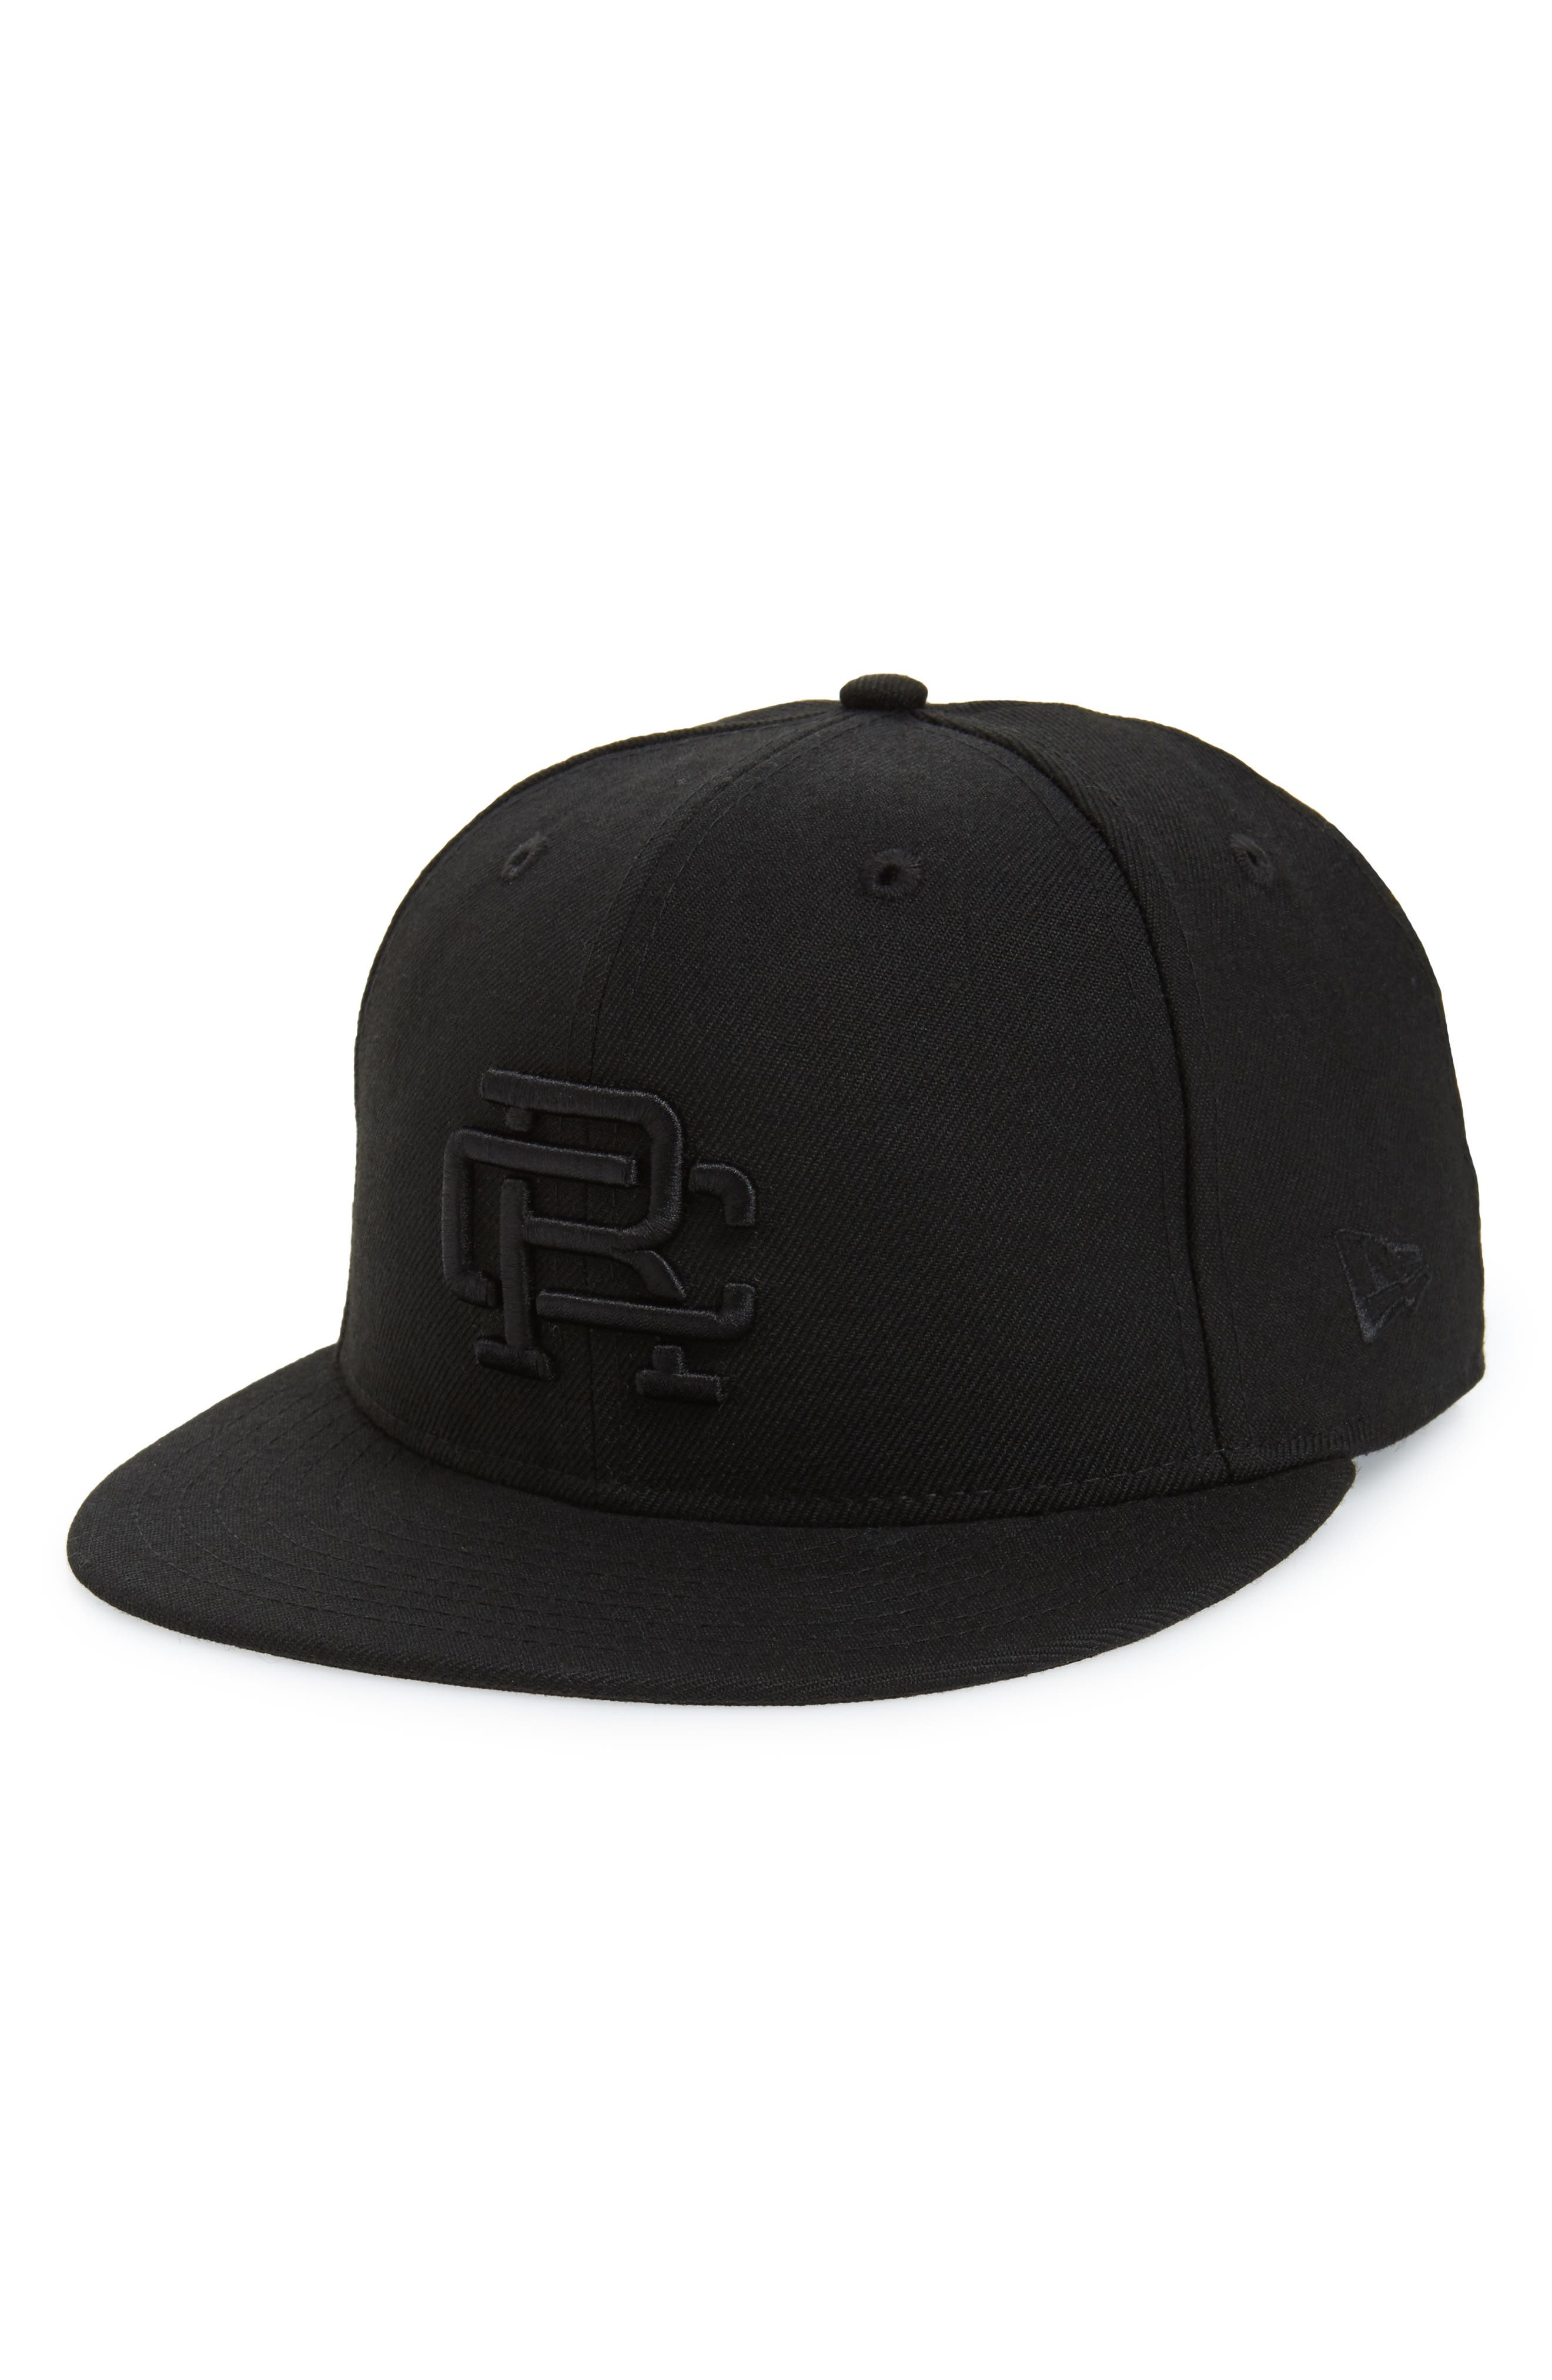 REIGNING CHAMP New Era Fitted Baseball Cap, Main, color, BLACK / BLACK